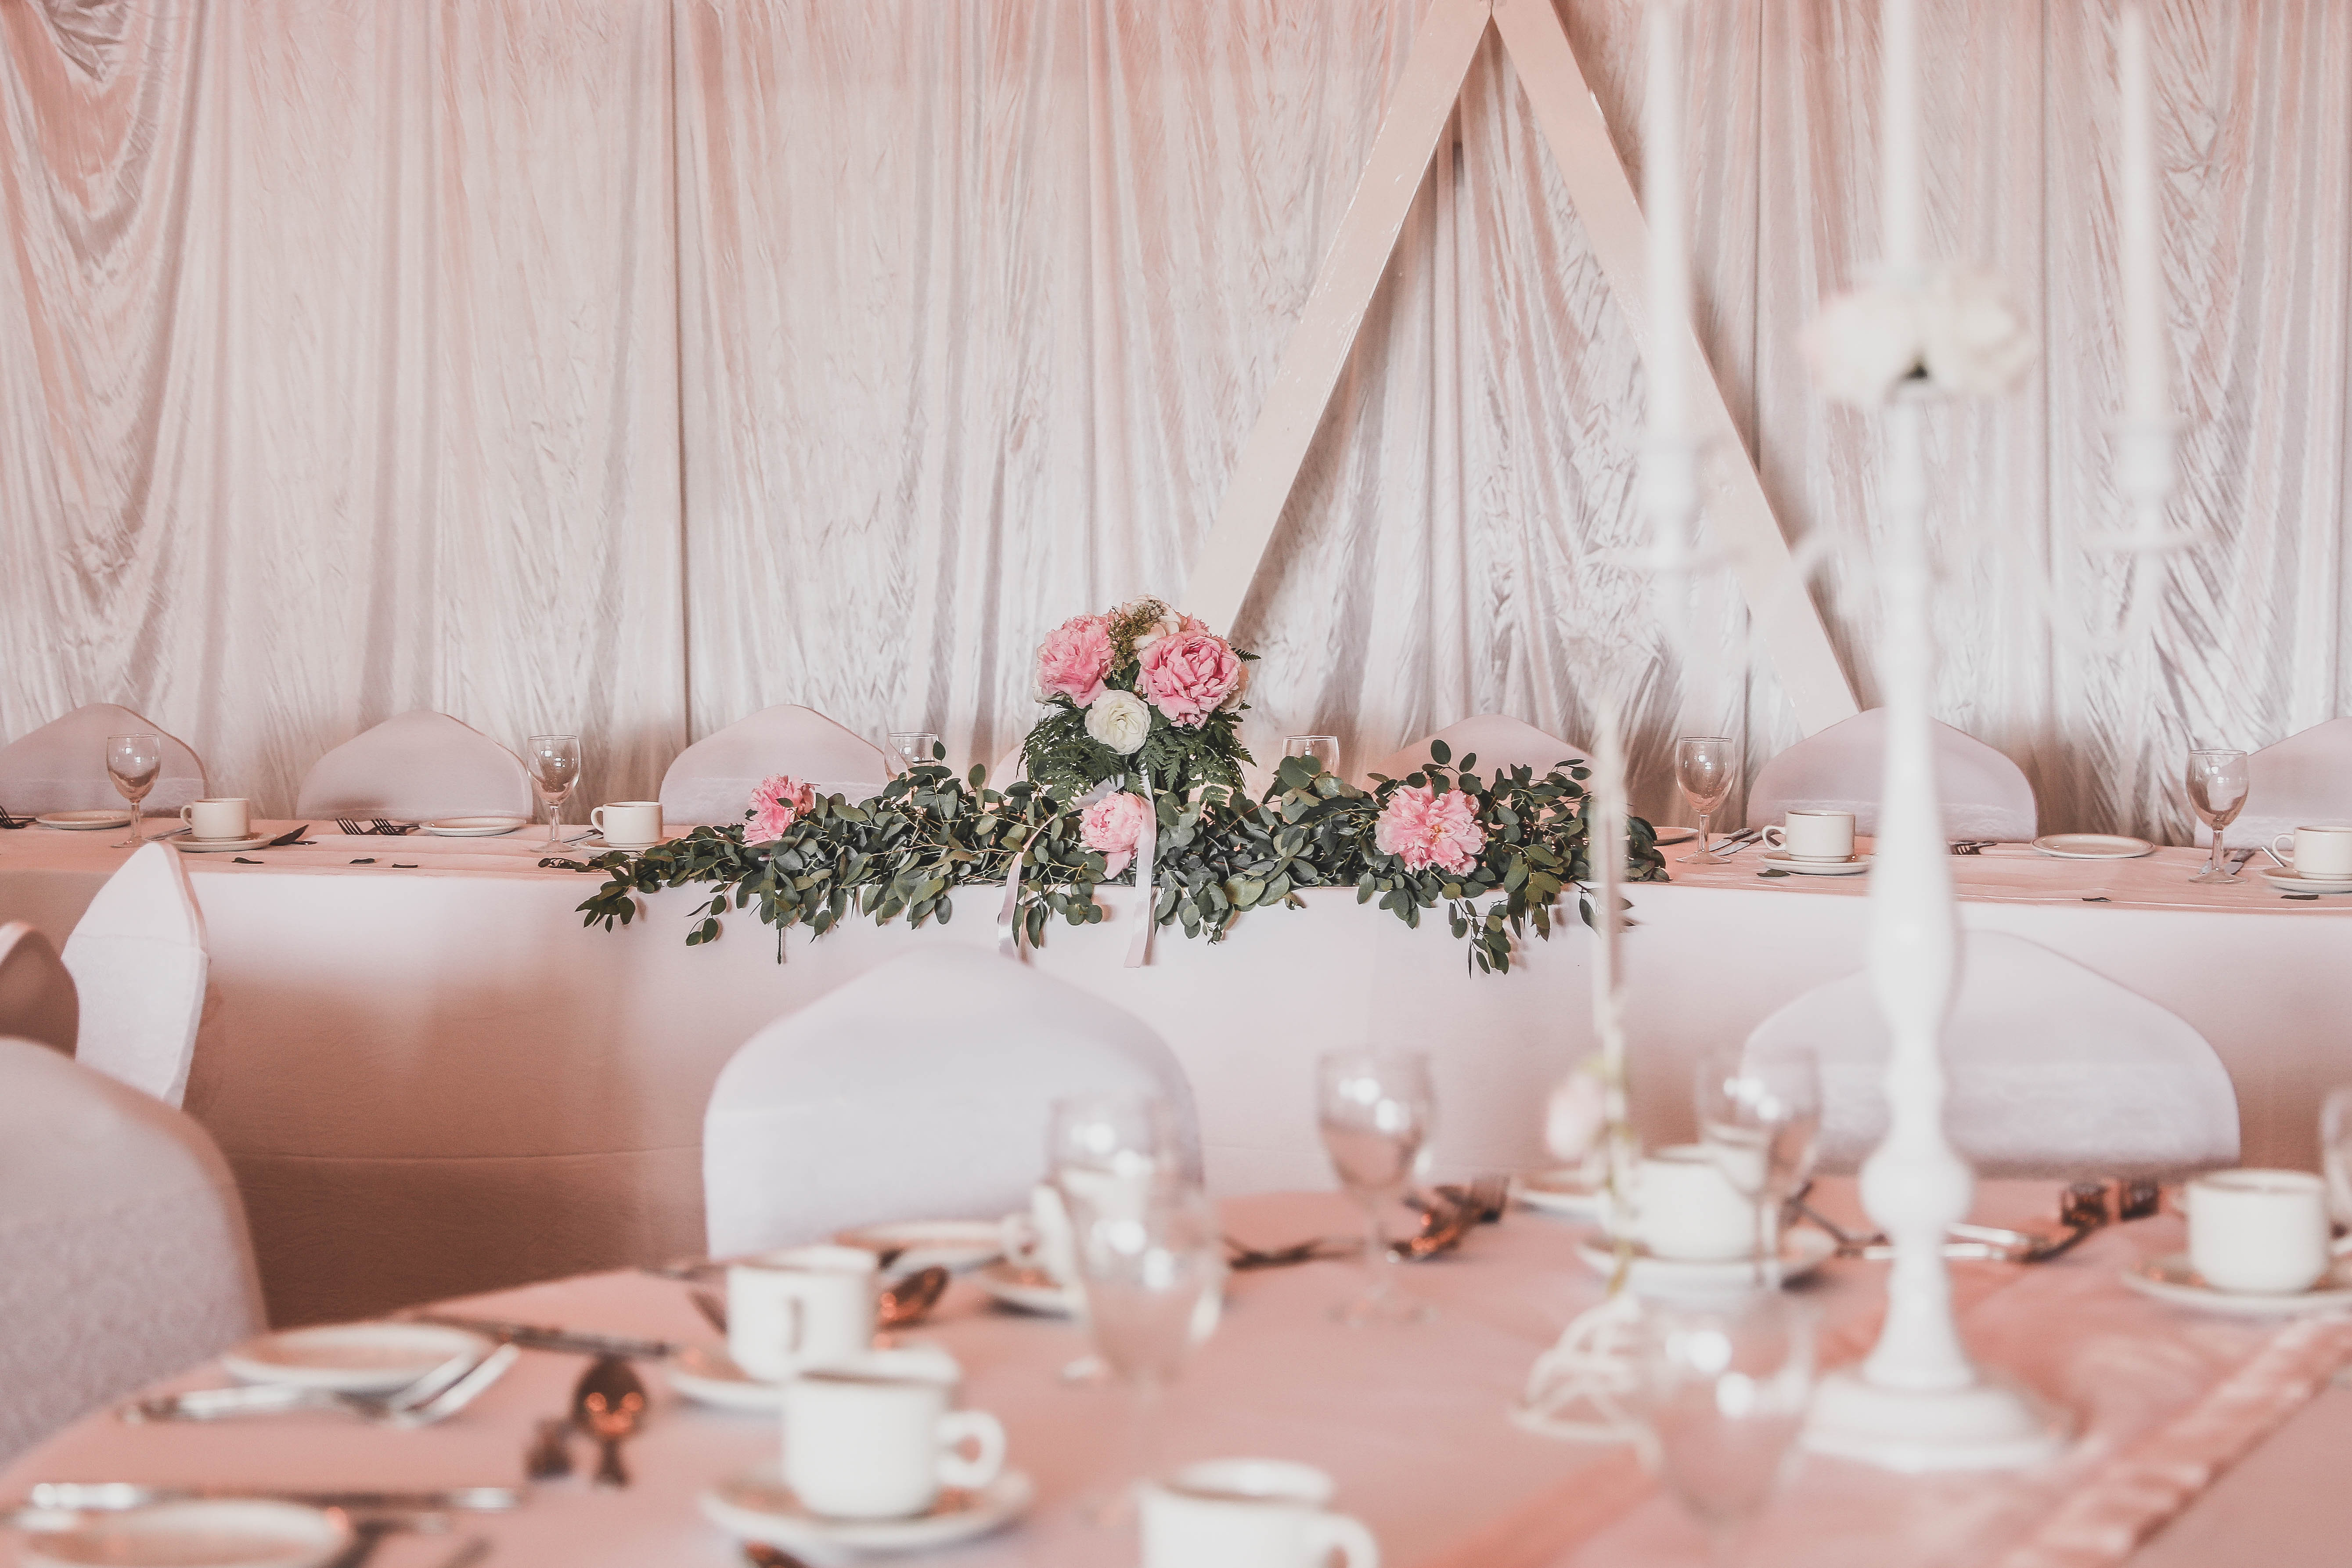 A Frame Backdrop & Crisp White Linen